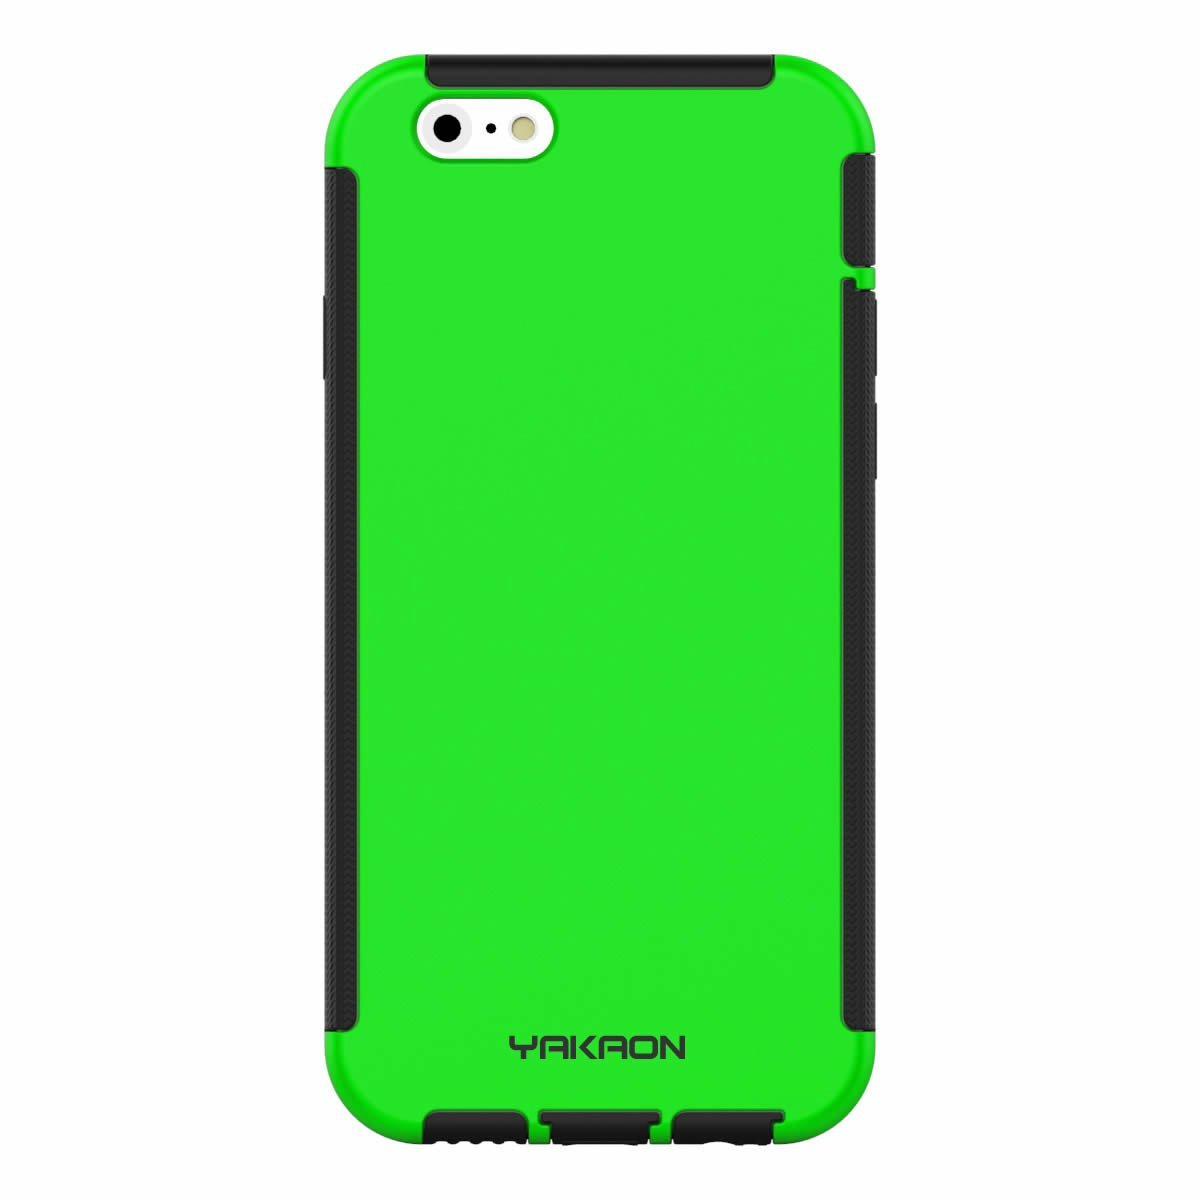 Durable Shatterproof, Dustproof, Shockproof Protective Case for iPhone 5S green